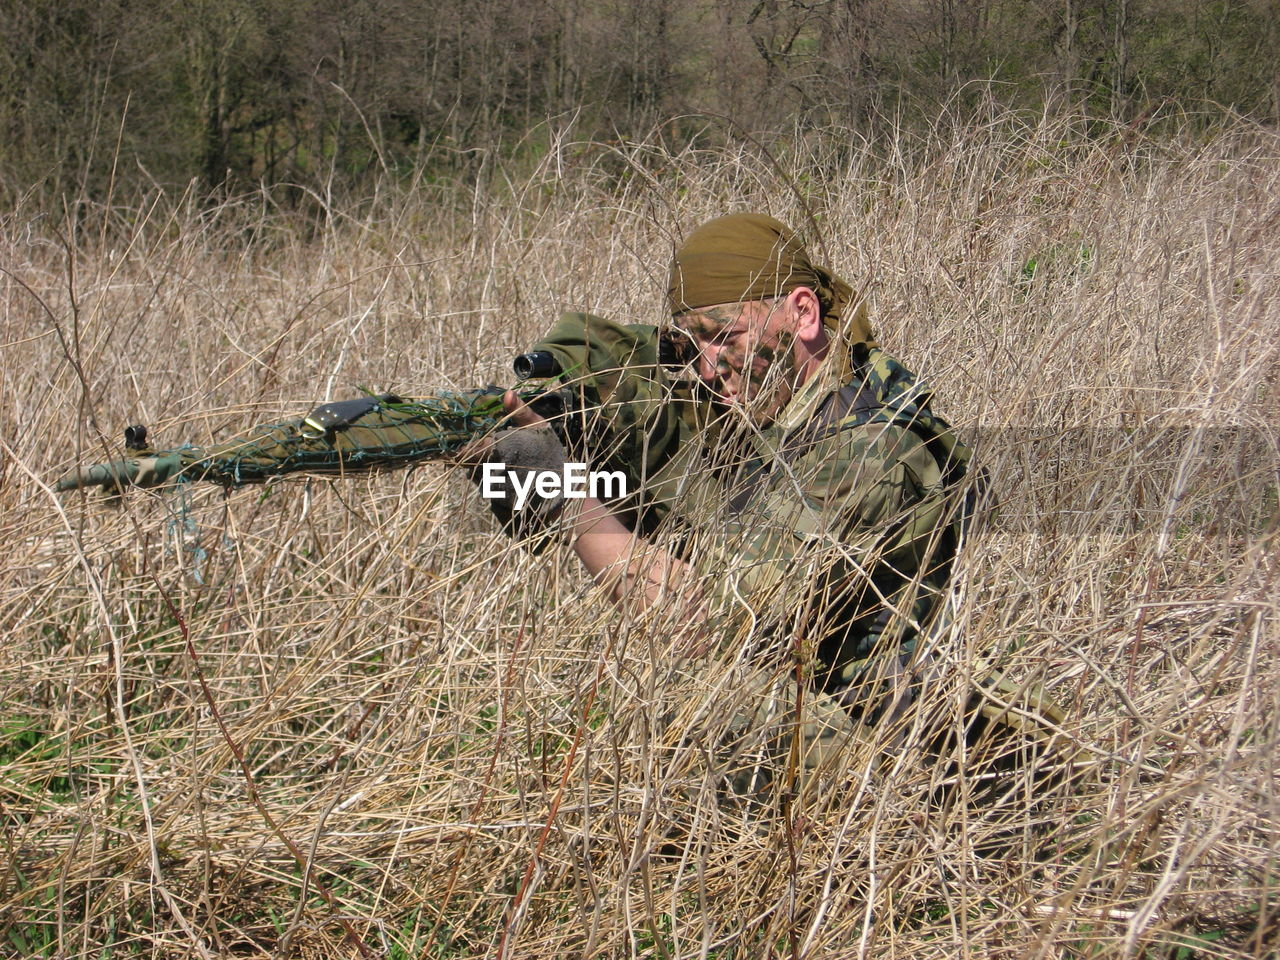 Sniped Aiming With Rifle At Grassy Field